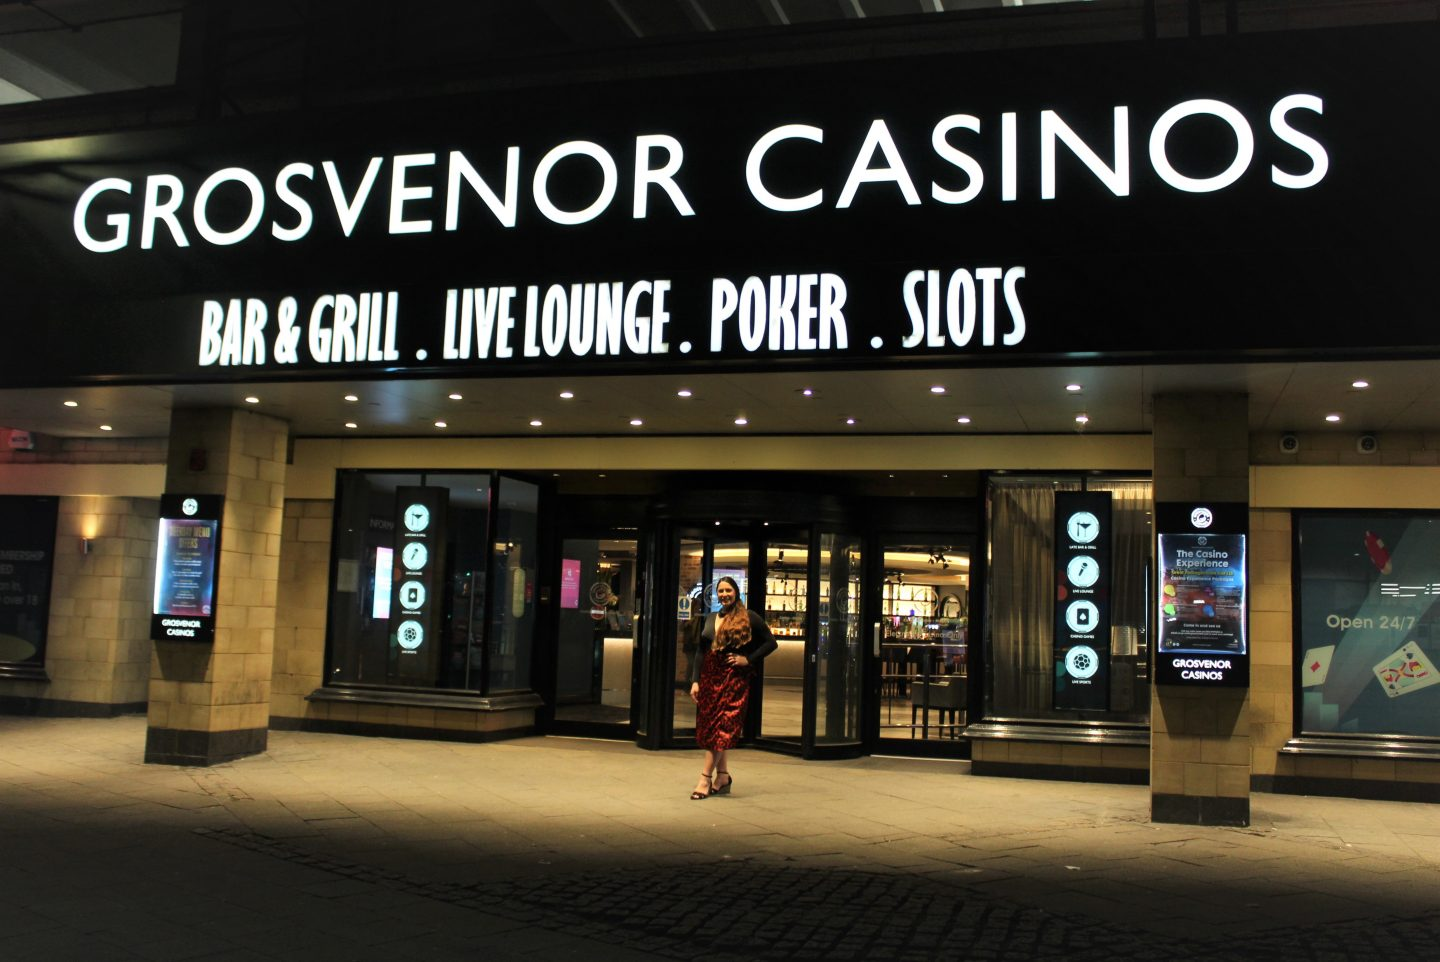 Grovensor Casino